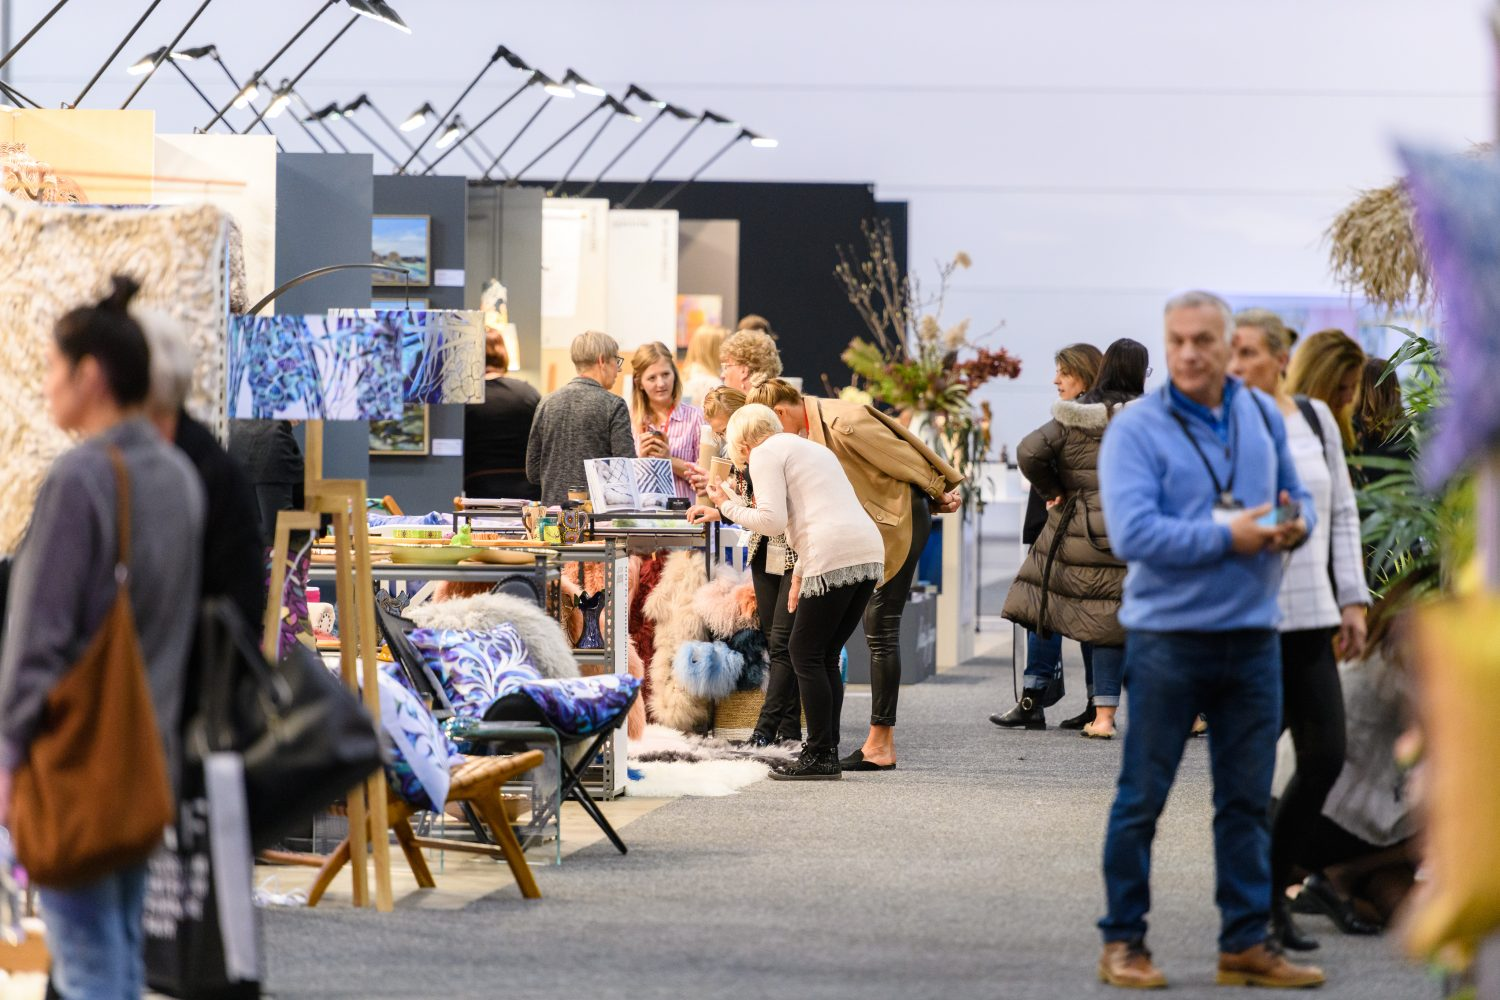 best july 2019 design events BEST JULY 2019 DESIGN EVENTS 20180720 decordesign 4184 43621571892 o